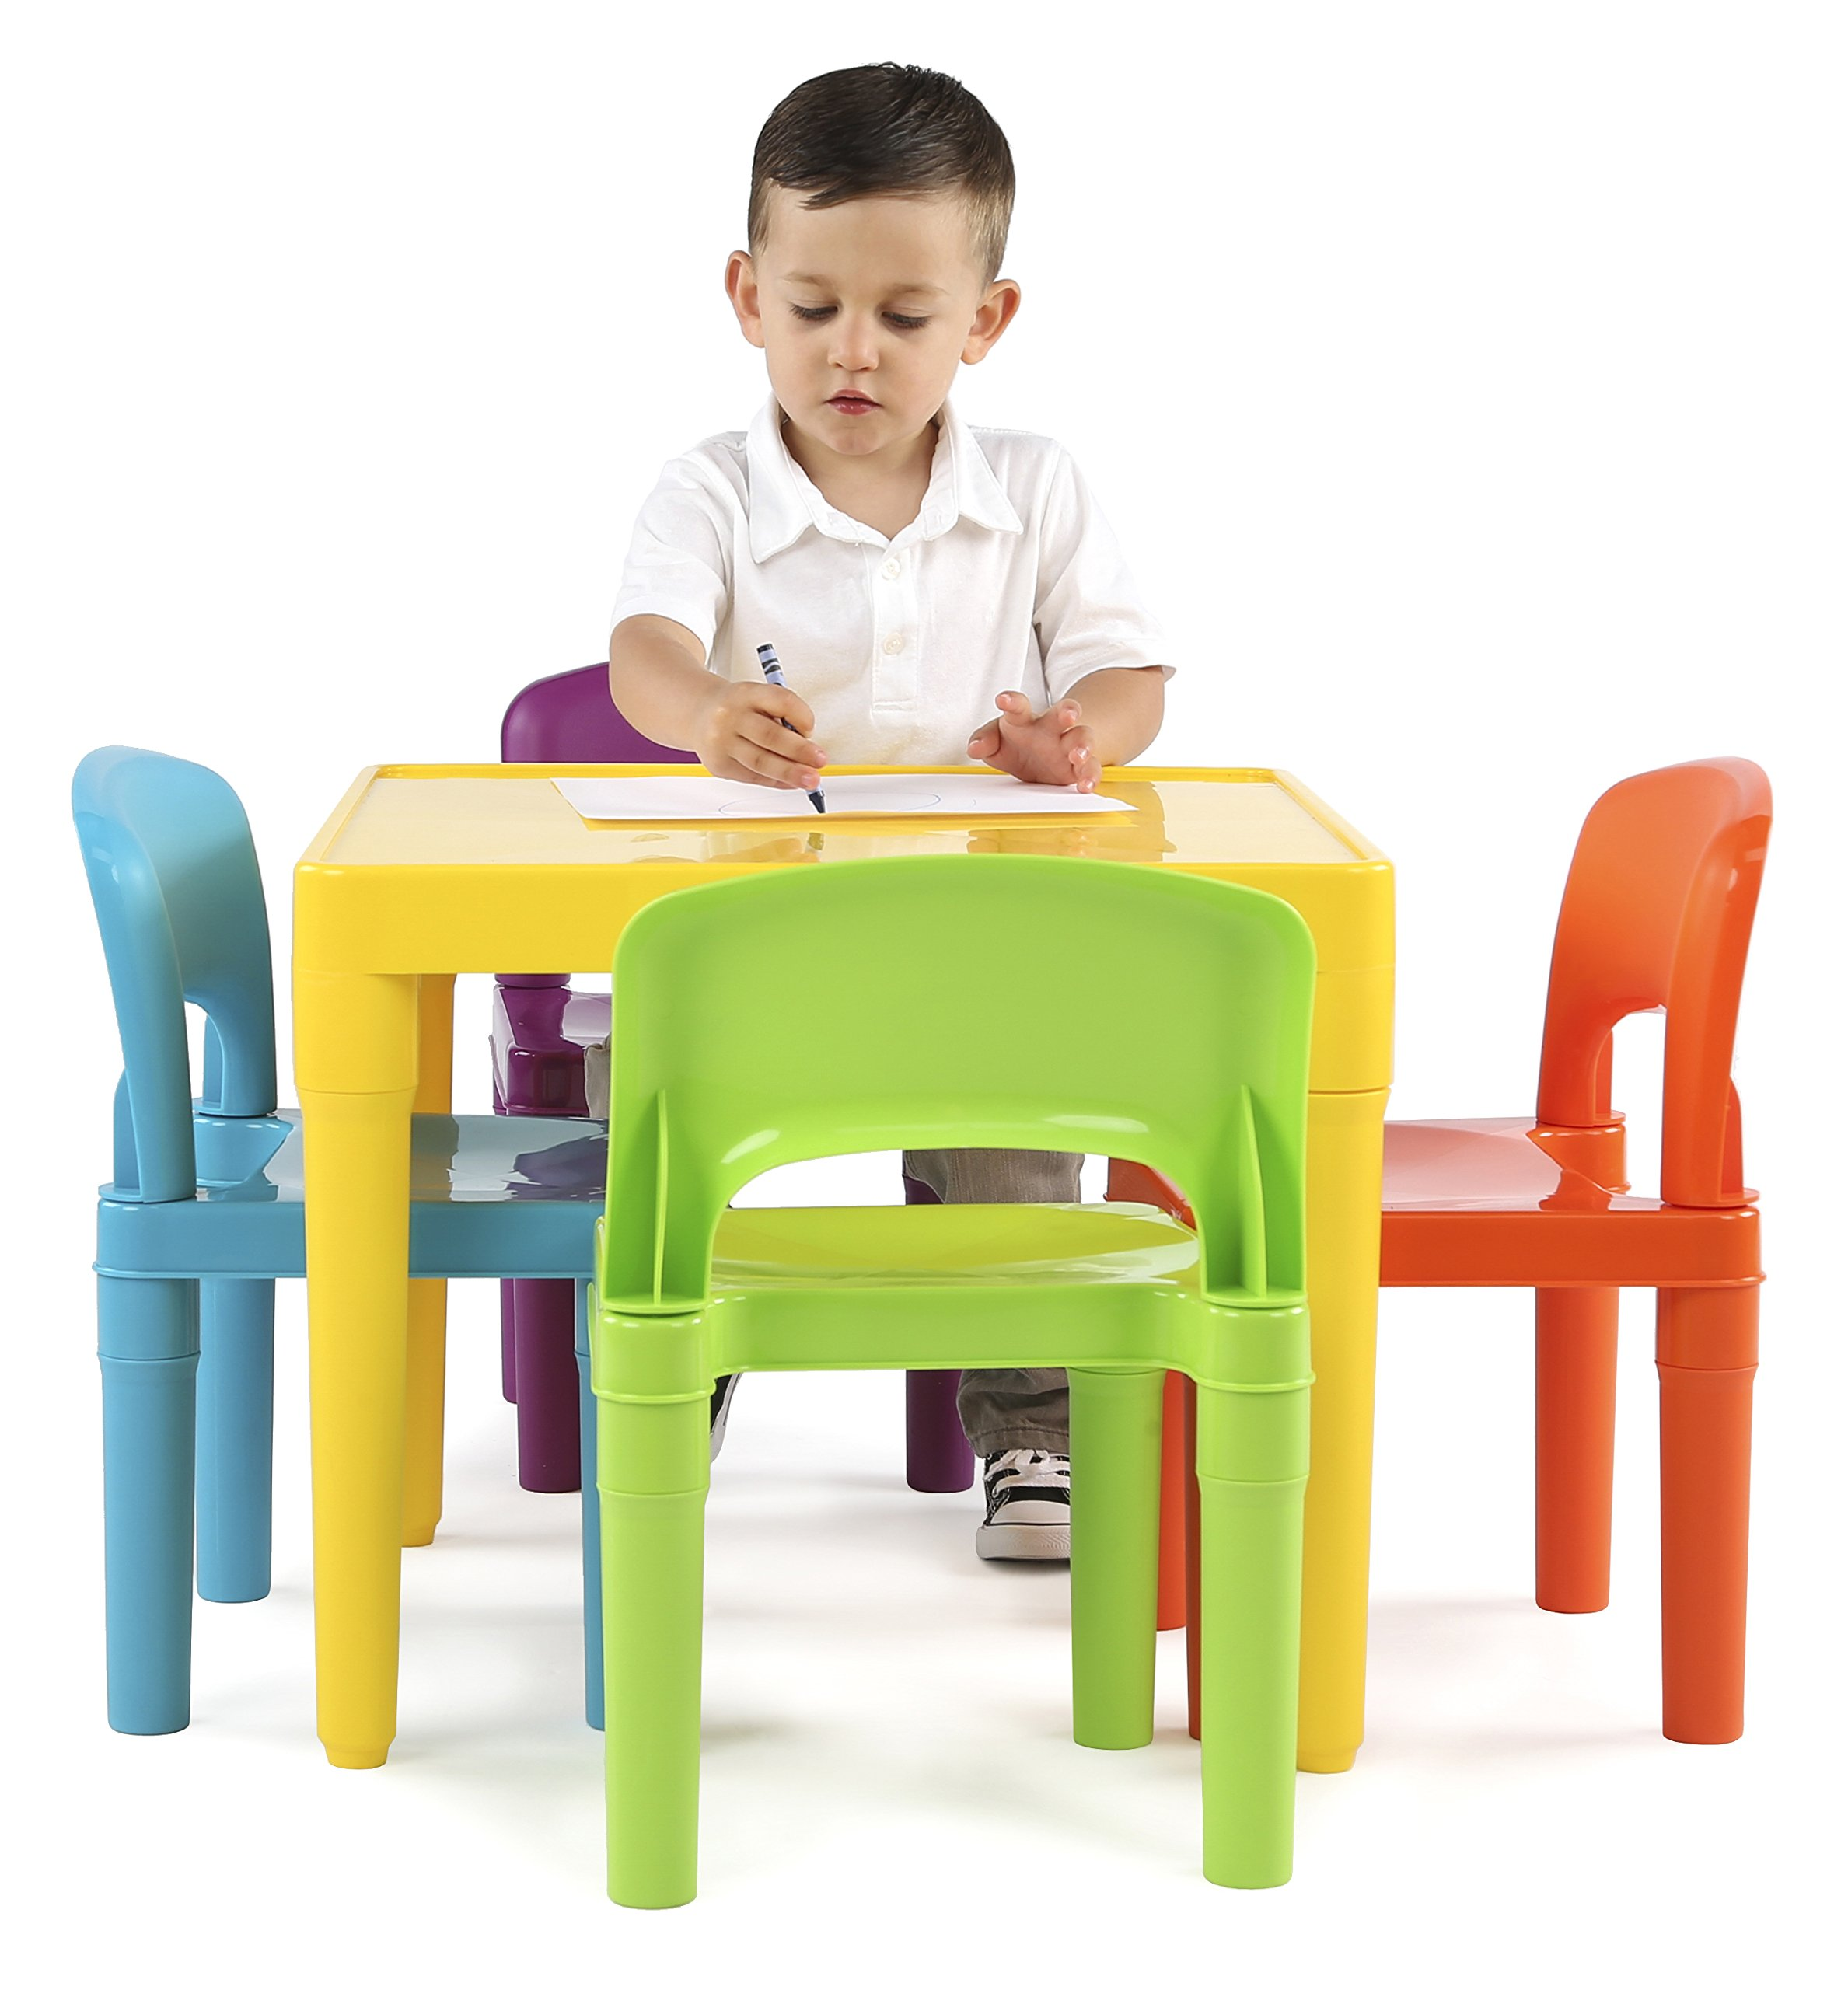 tot tutors kids plastic table and 4 chairs set vibrant colors amazon. Black Bedroom Furniture Sets. Home Design Ideas